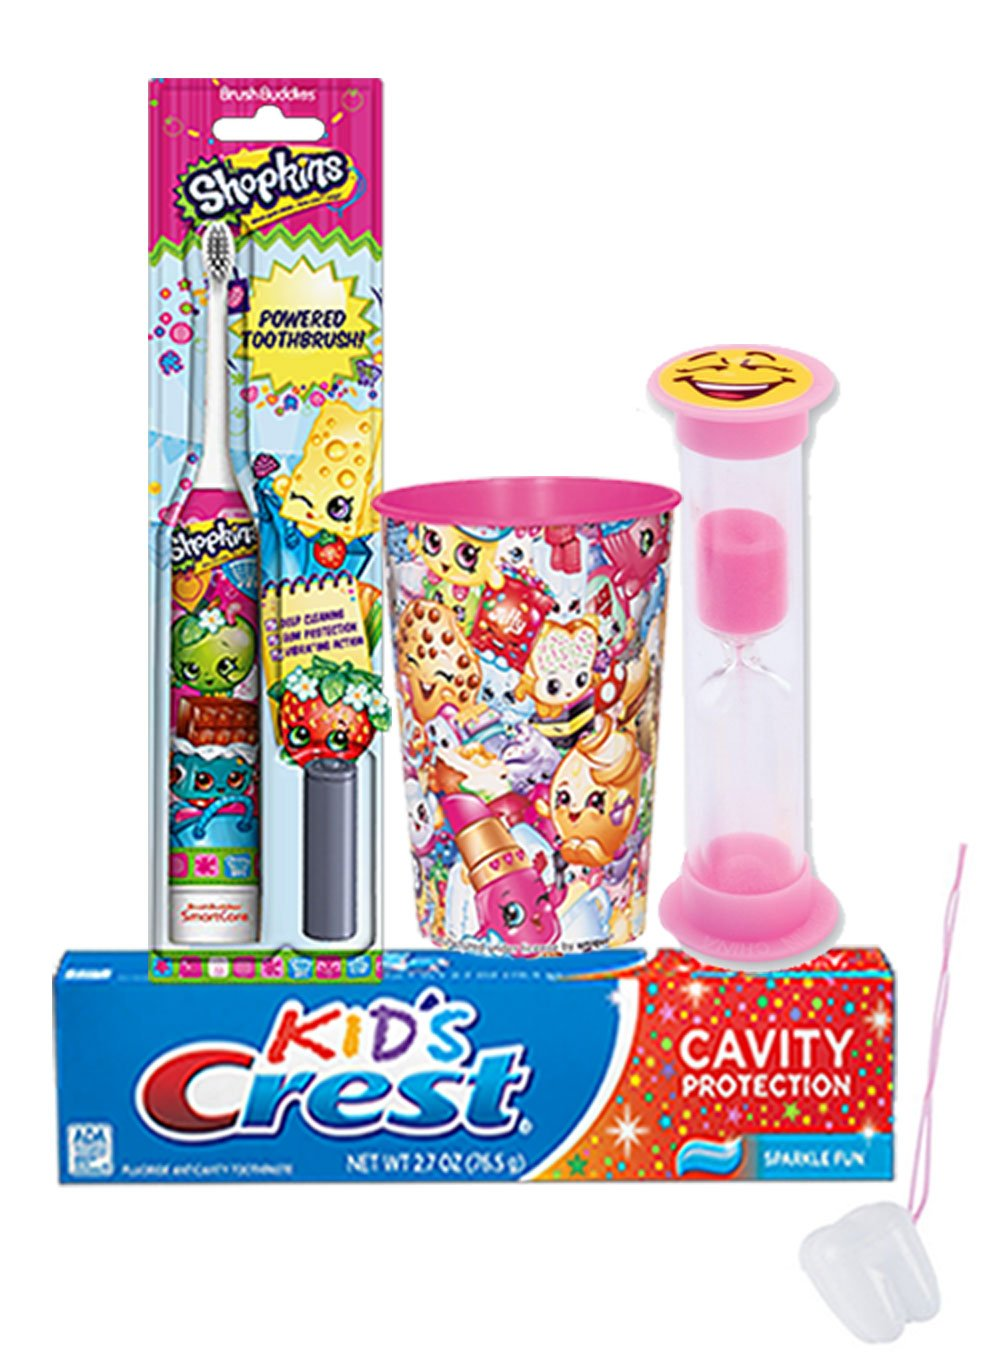 Shopkin 4pc. Bright Smile Oral Hygiene Set! Shopkins Turbo Powered Toothbrush, Crest Kids Sparkling Toothpaste, 2 Minute…